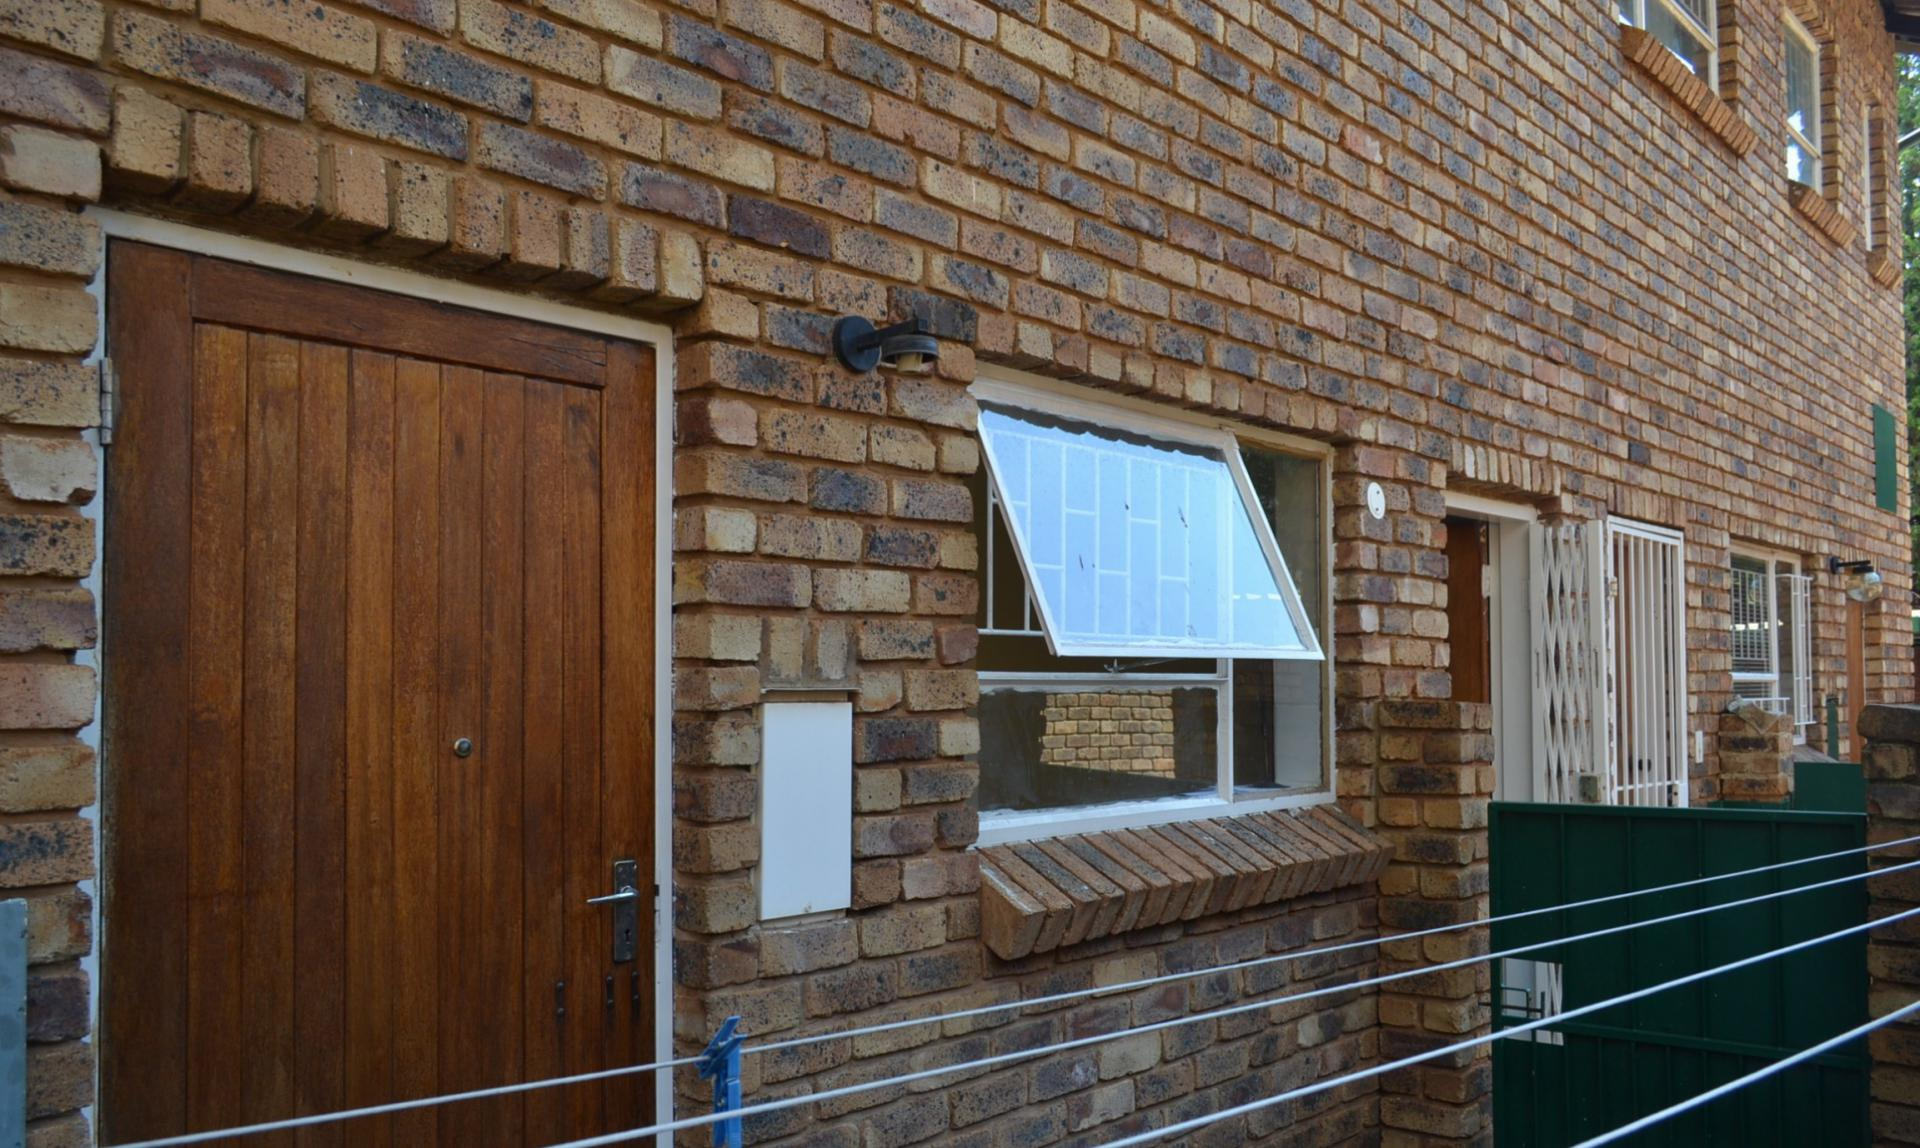 2 Bedroom Duplex For Sale For Sale In Hatfield Private